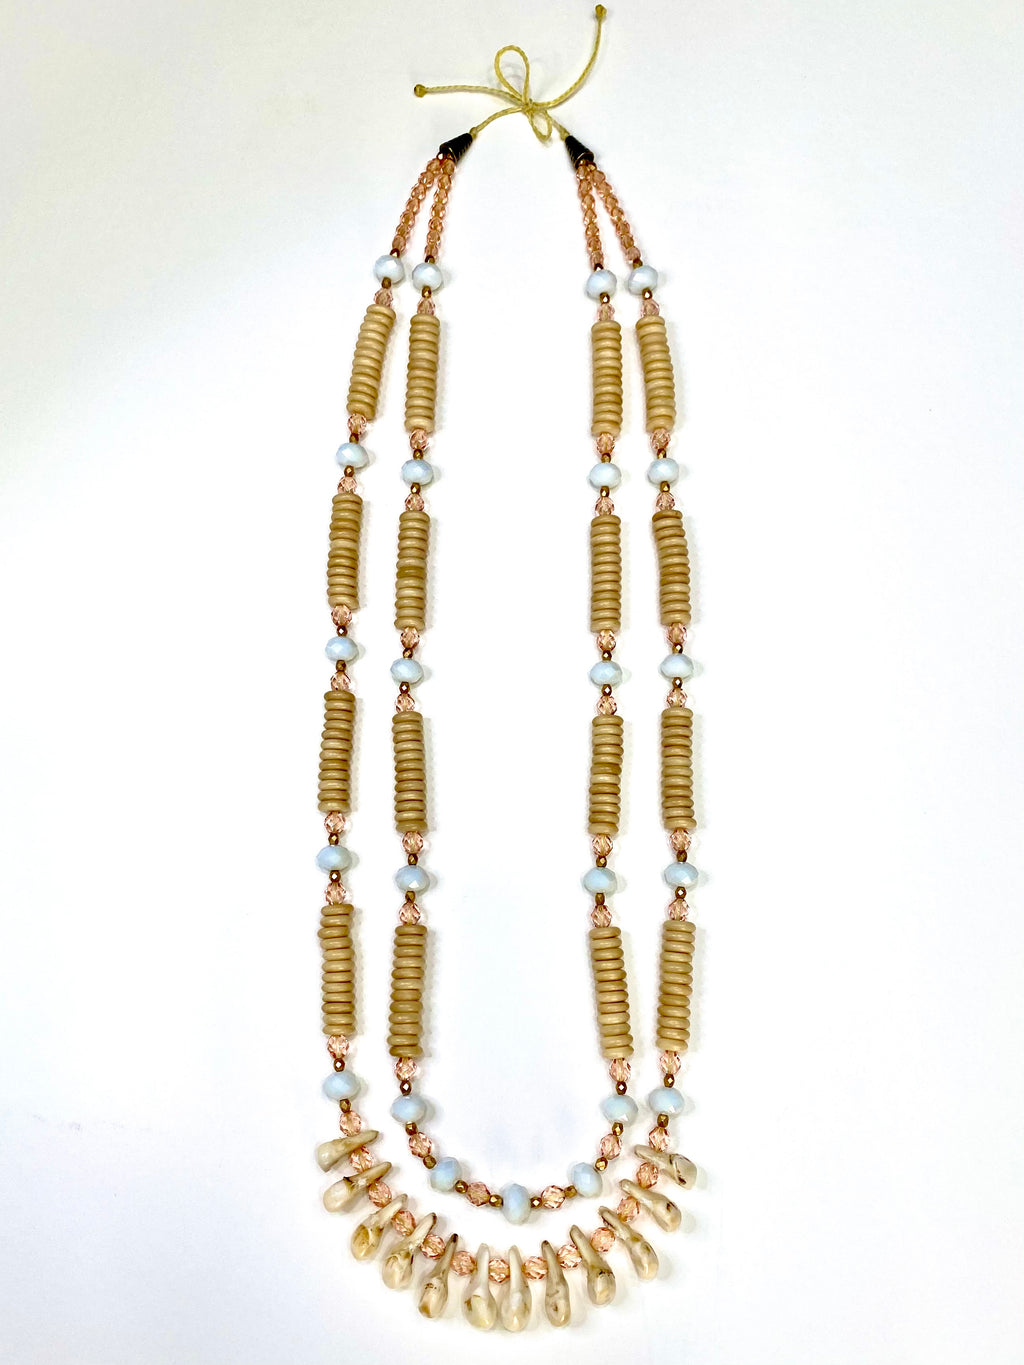 Elk Ivory & Bone Necklace